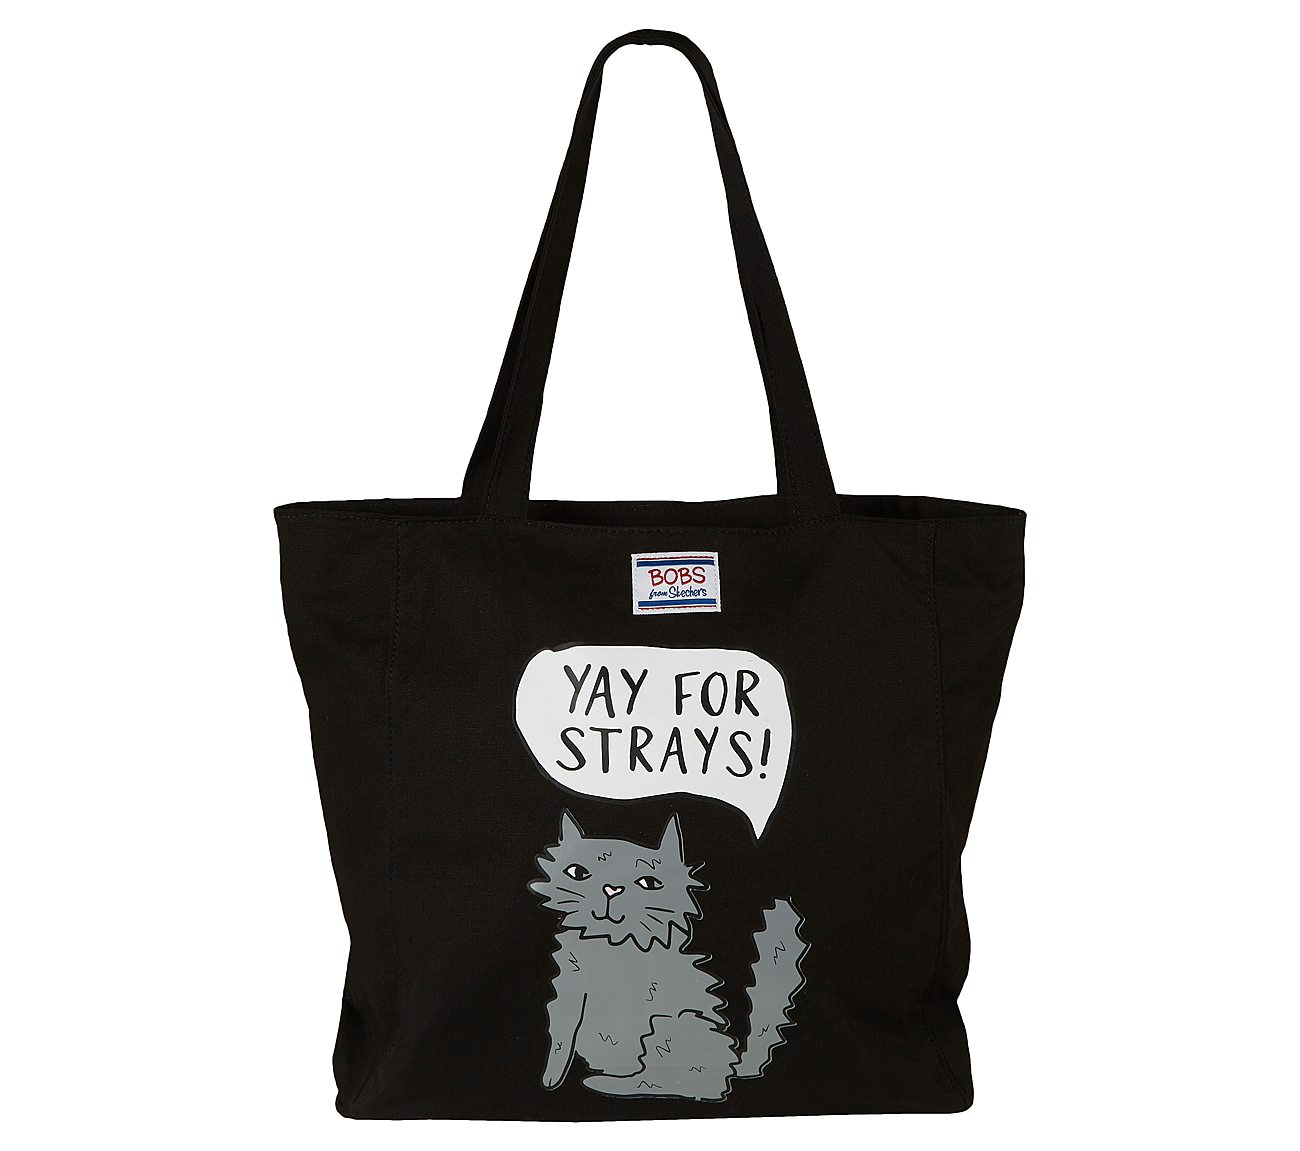 BOBS Yay for Strays Tote Bag